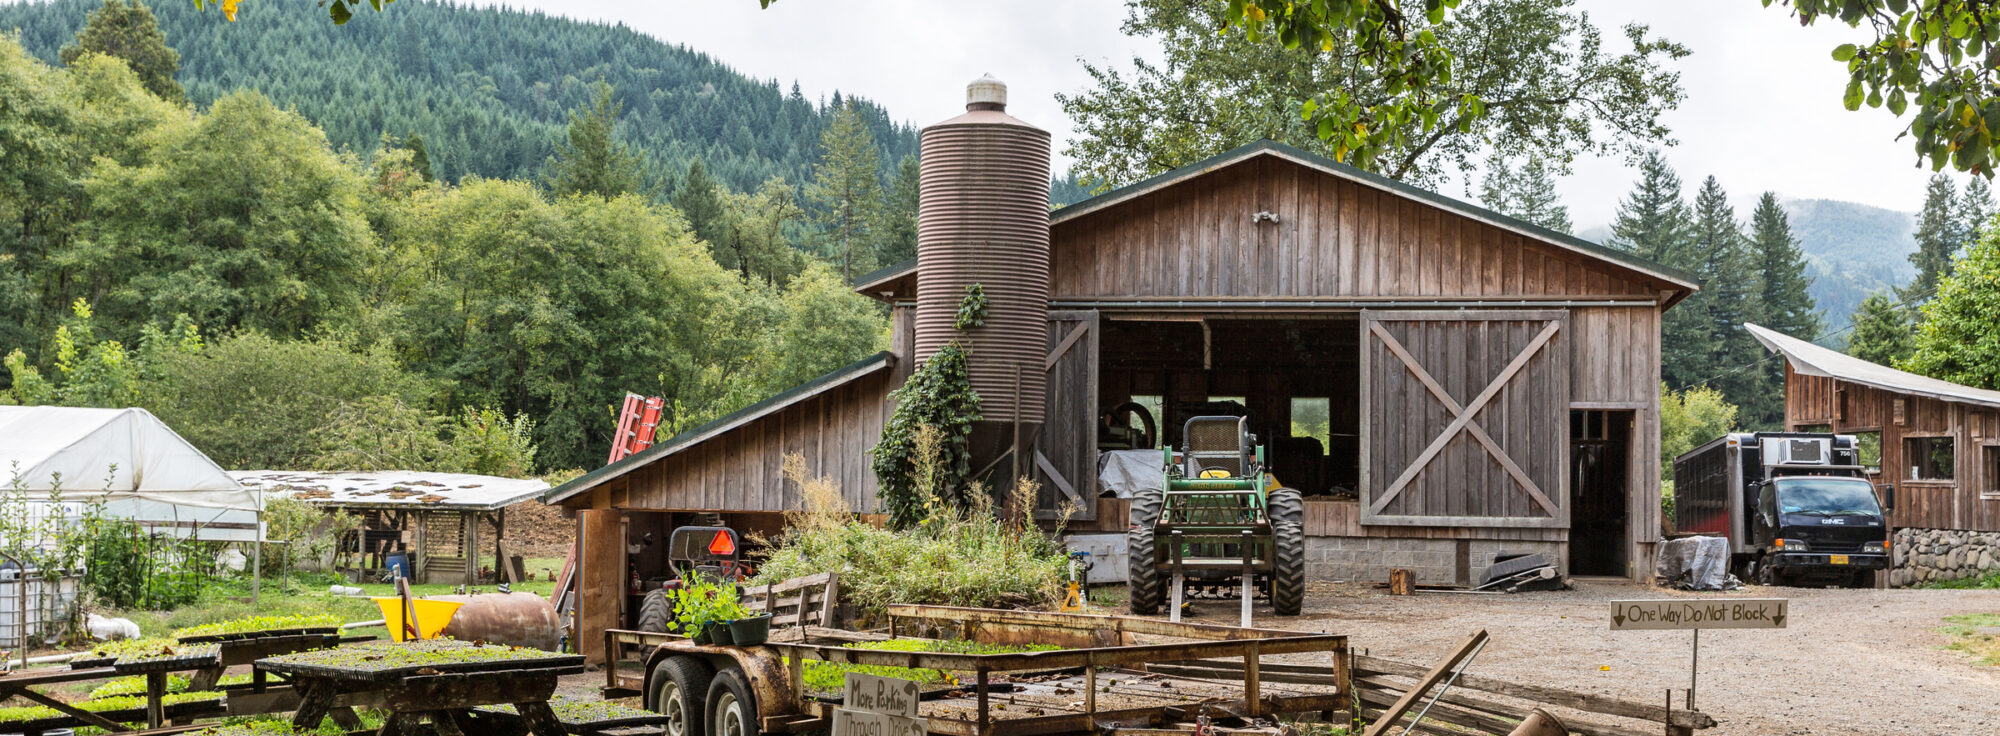 Rustic wood barn with tractor